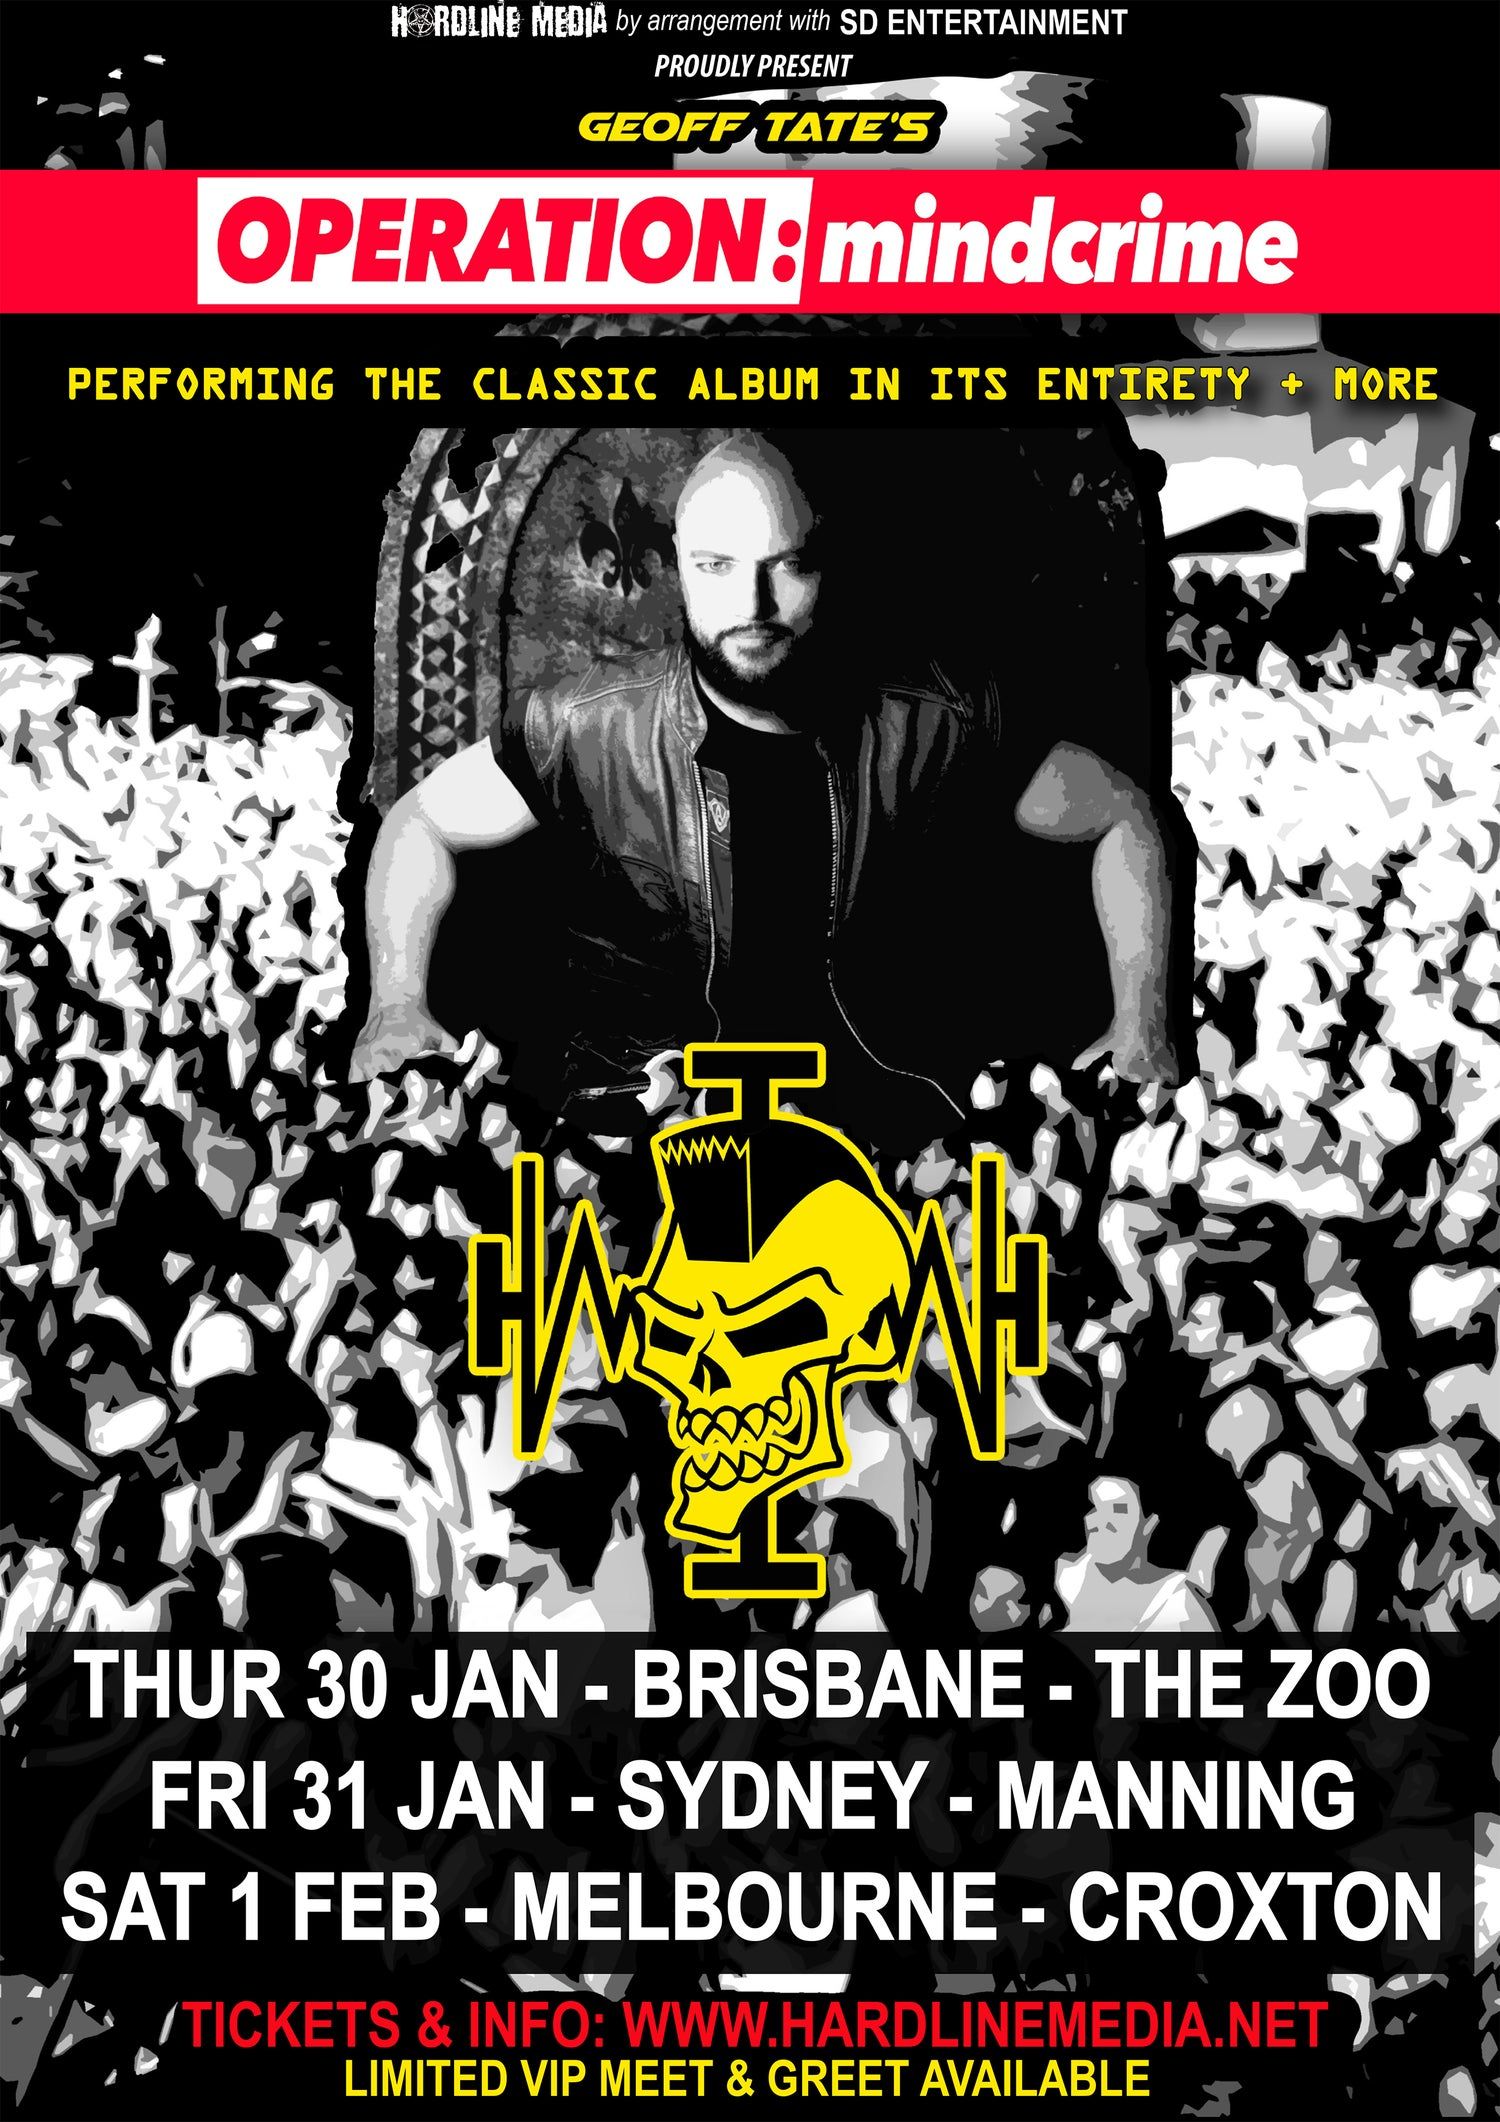 Image of GA TICKET - GEOFF TATE - SYDNEY, MANNING - FRI 31 JAN